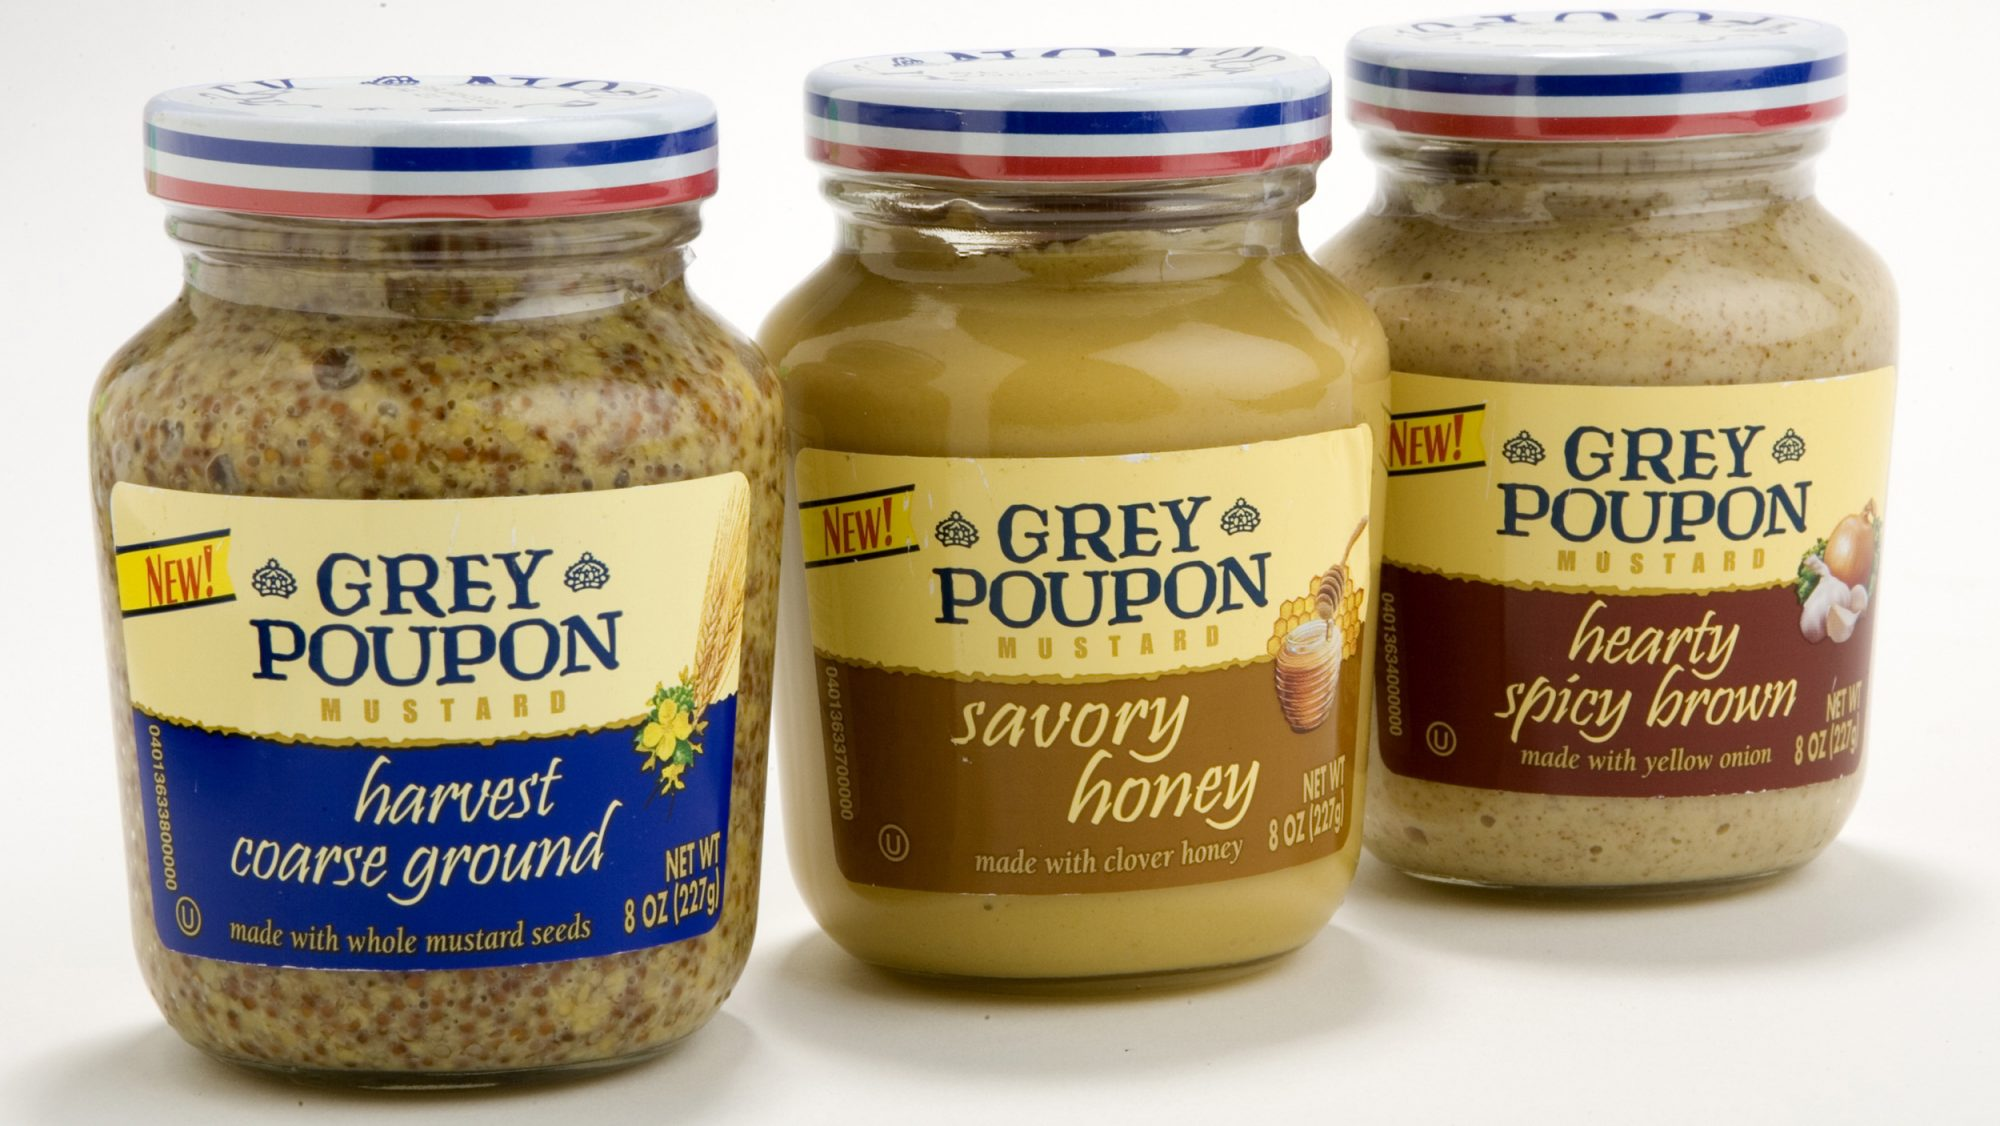 Why Rappers Love Grey Poupon (And Other Foods)